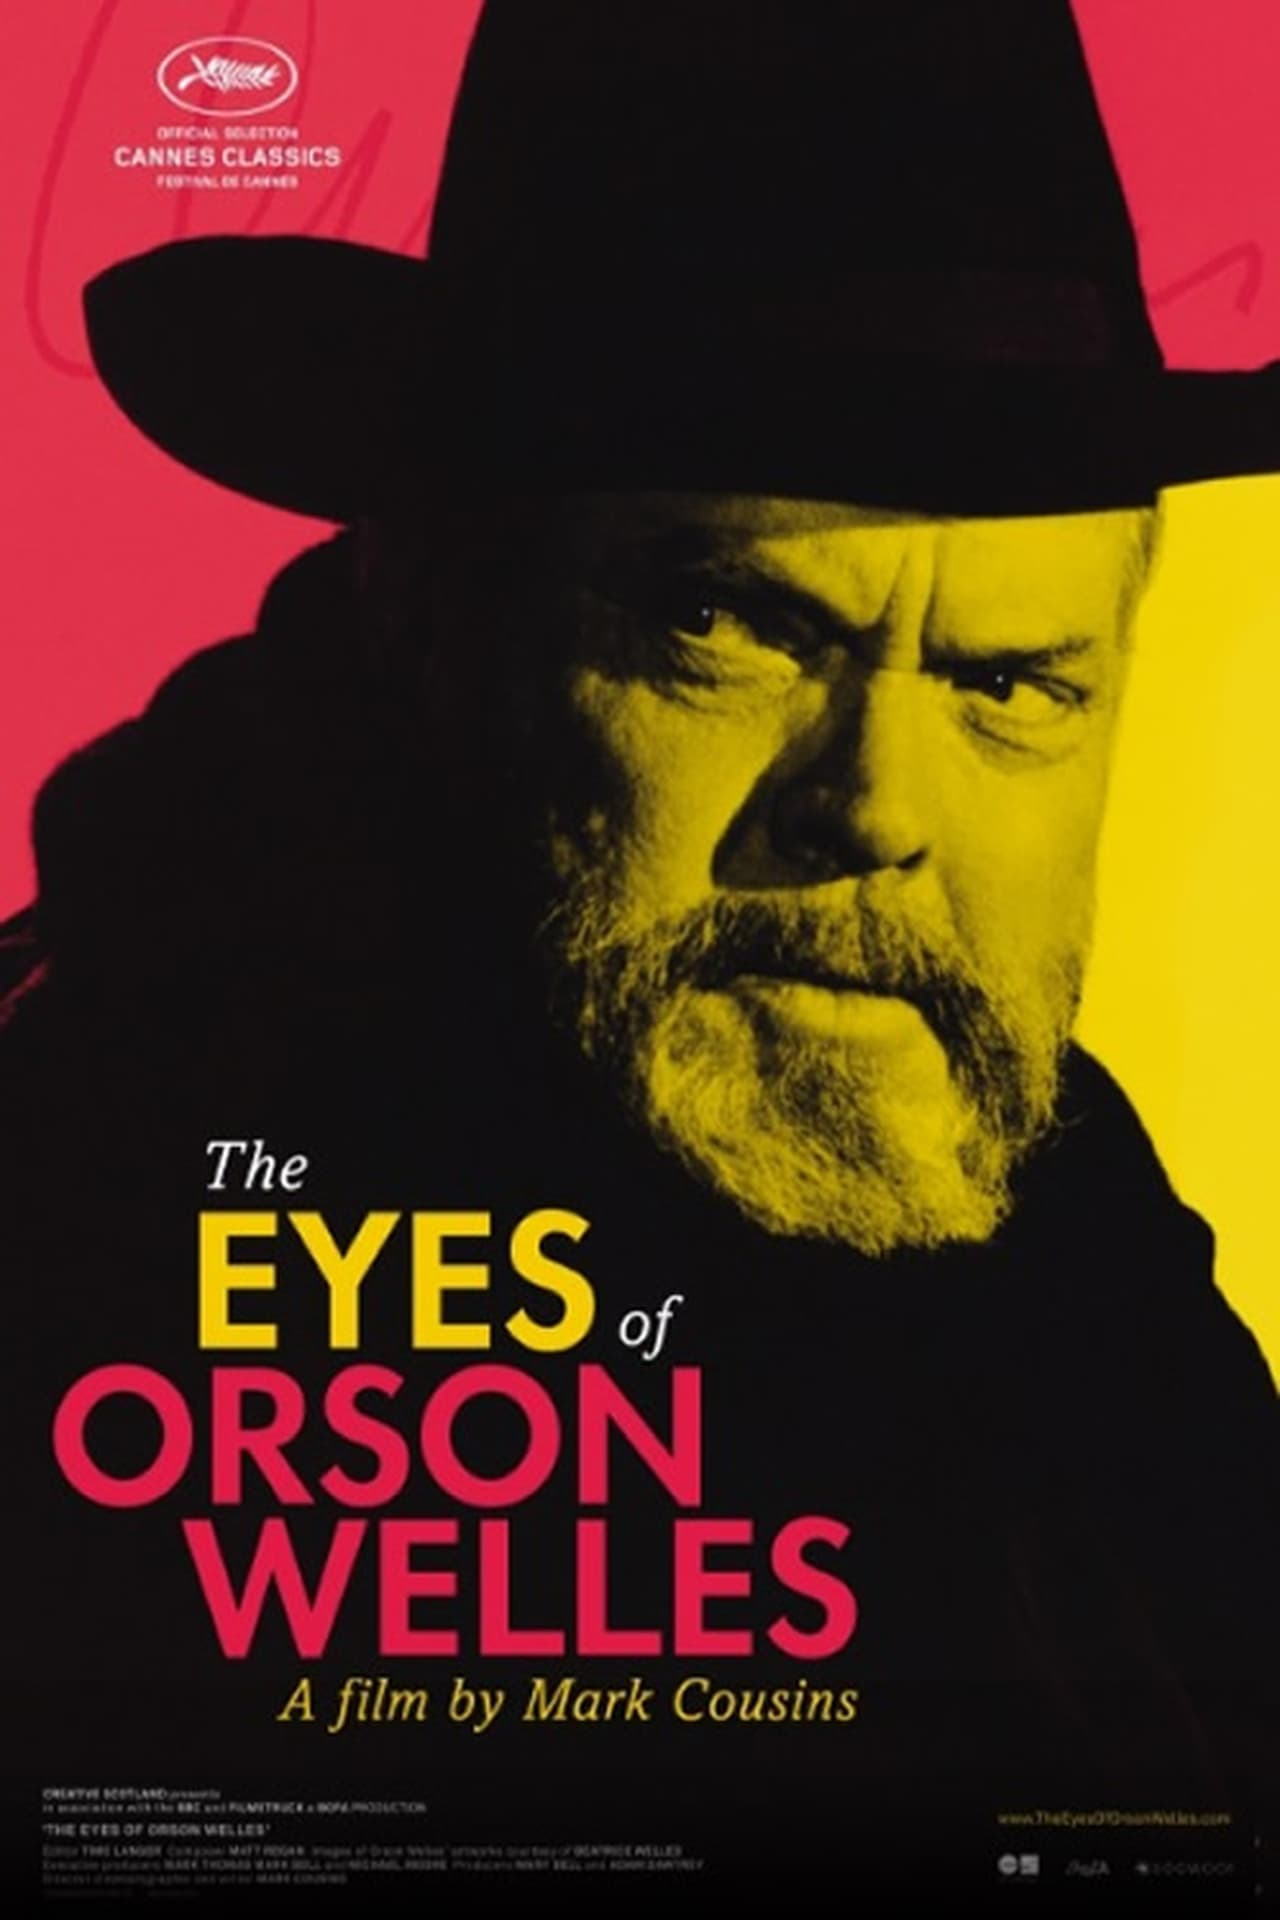 the life and achievements of orson welles a film maker - orson welles the term 'genius' was applied to him from the cradle, first by the man who would vie with orson's father to nurture the talent all agreed resided in the fragile boy(leaming, 3) george orson welles was born in kenosha, wisconsin on may 6, 1915.